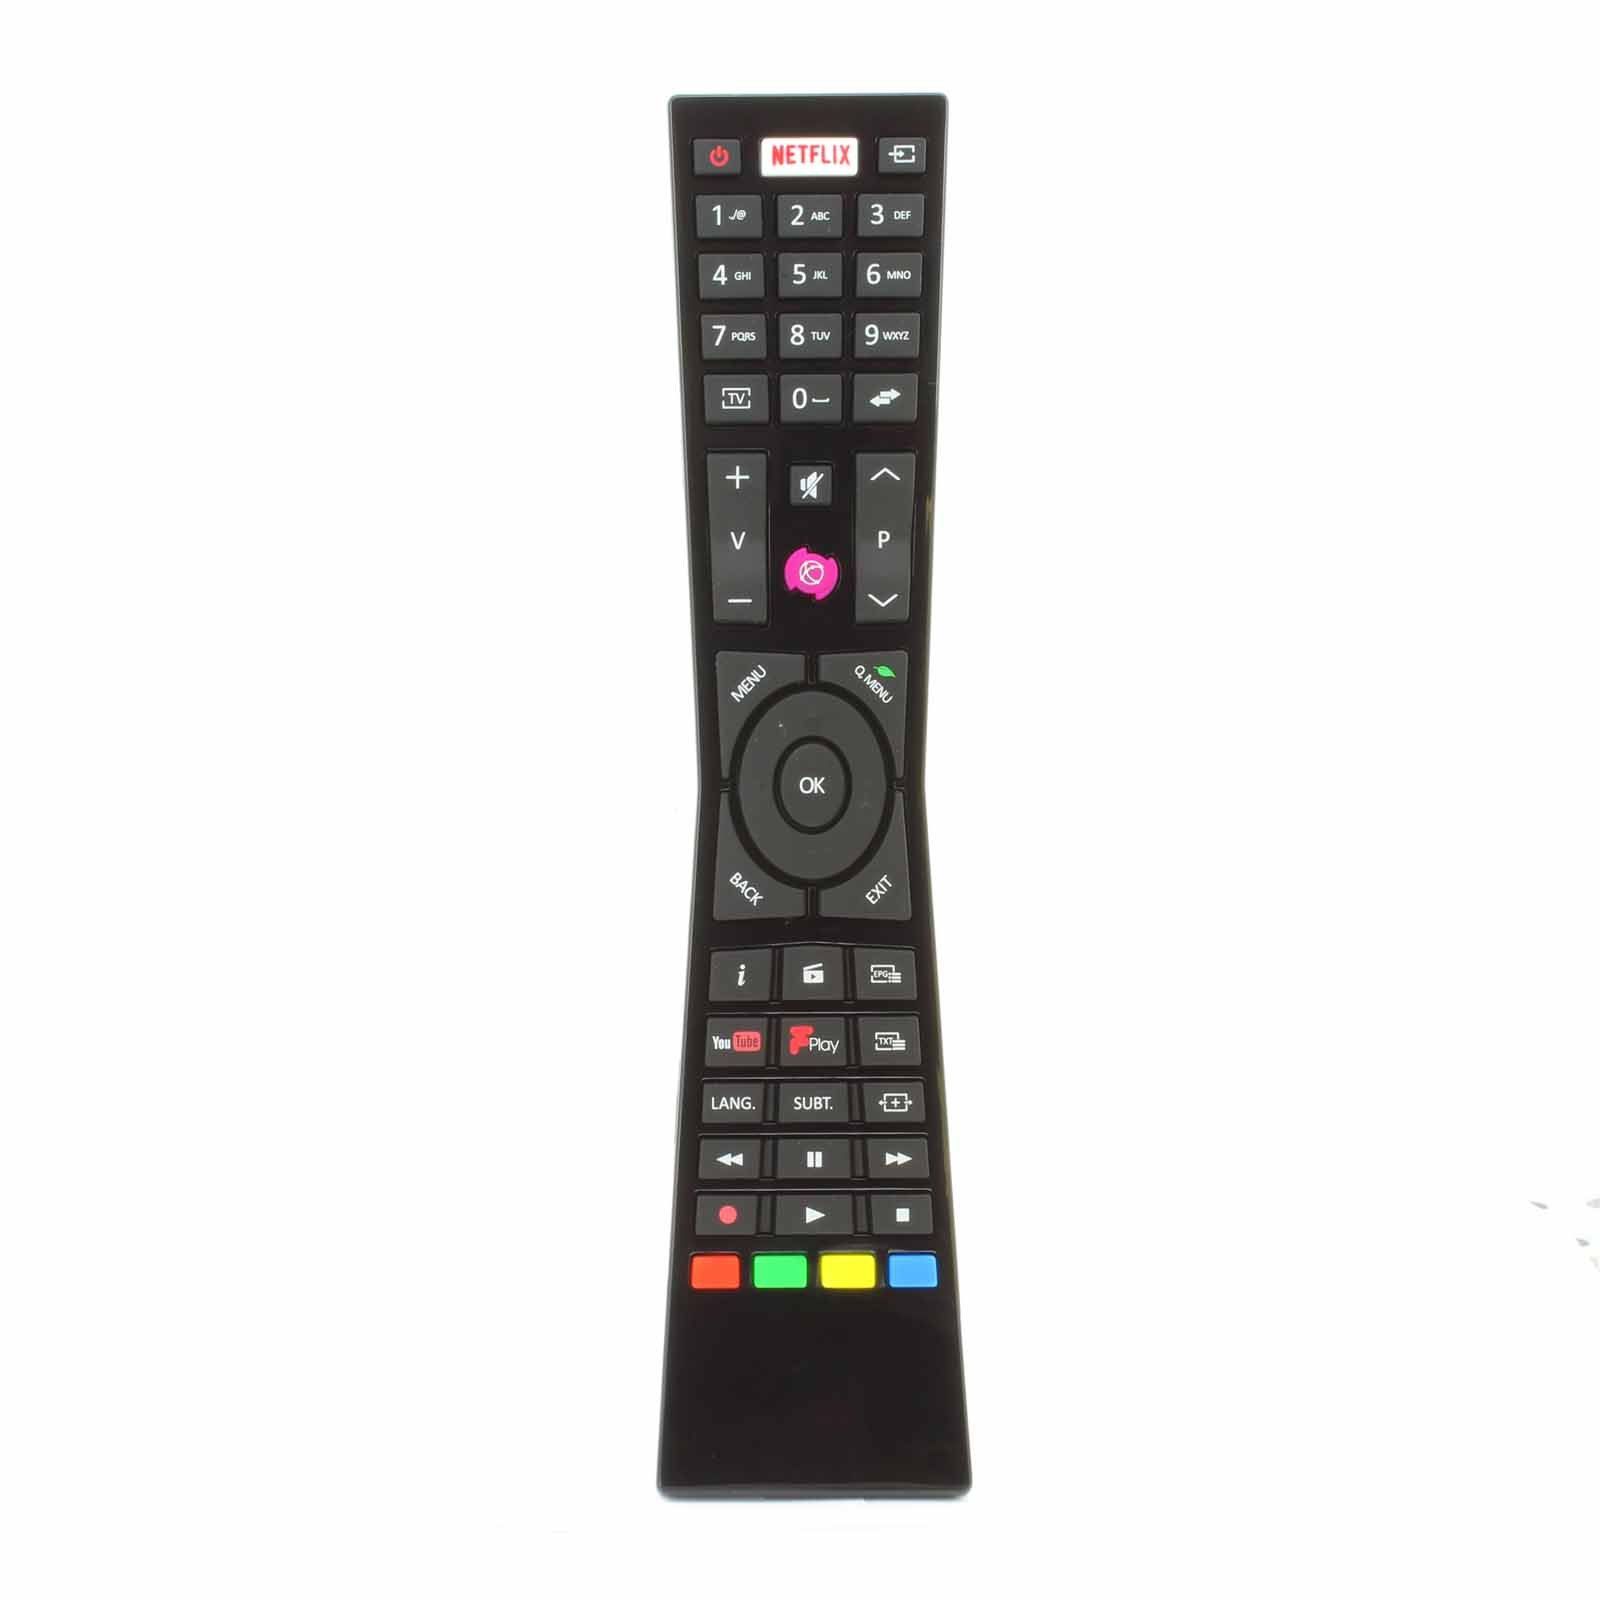 RM-C3231 Replacement Remote Control for Currys JVC RM-C3231 RMC3231 Smart 4K LED TVs with NETFLIX YouTube Freeview - Fits Many Models